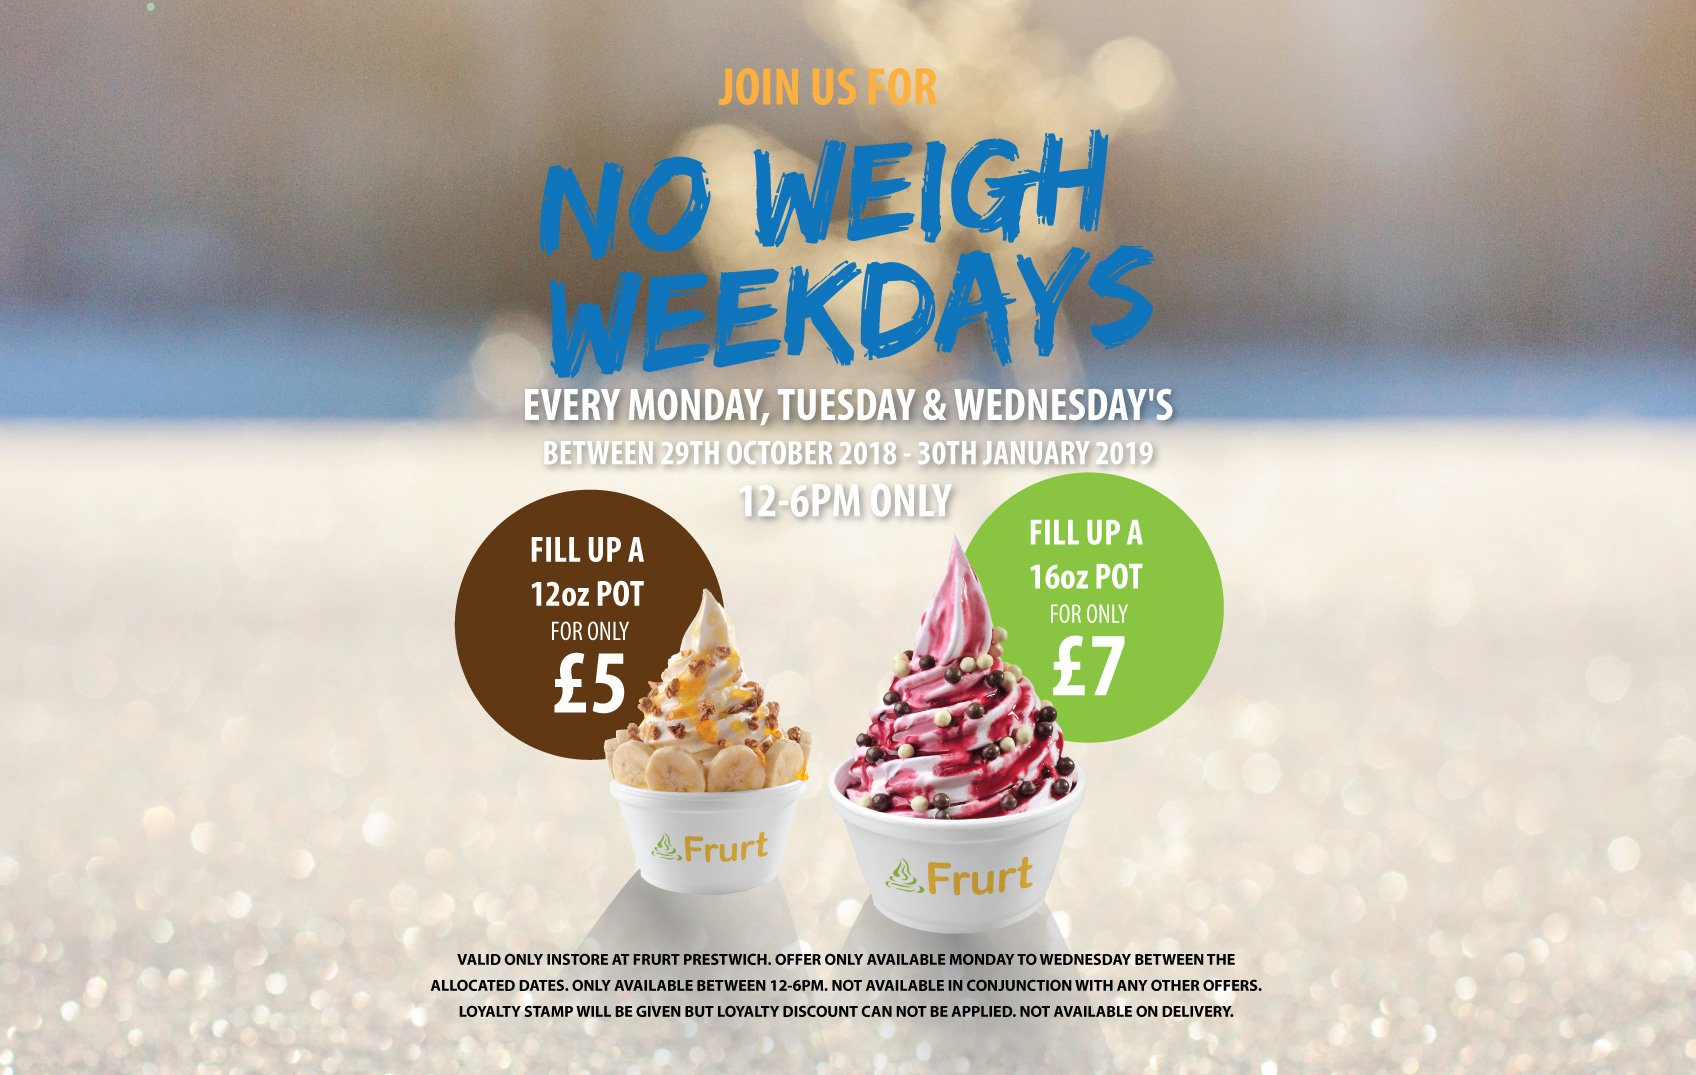 Image showing a poster offer for frozen yogurt